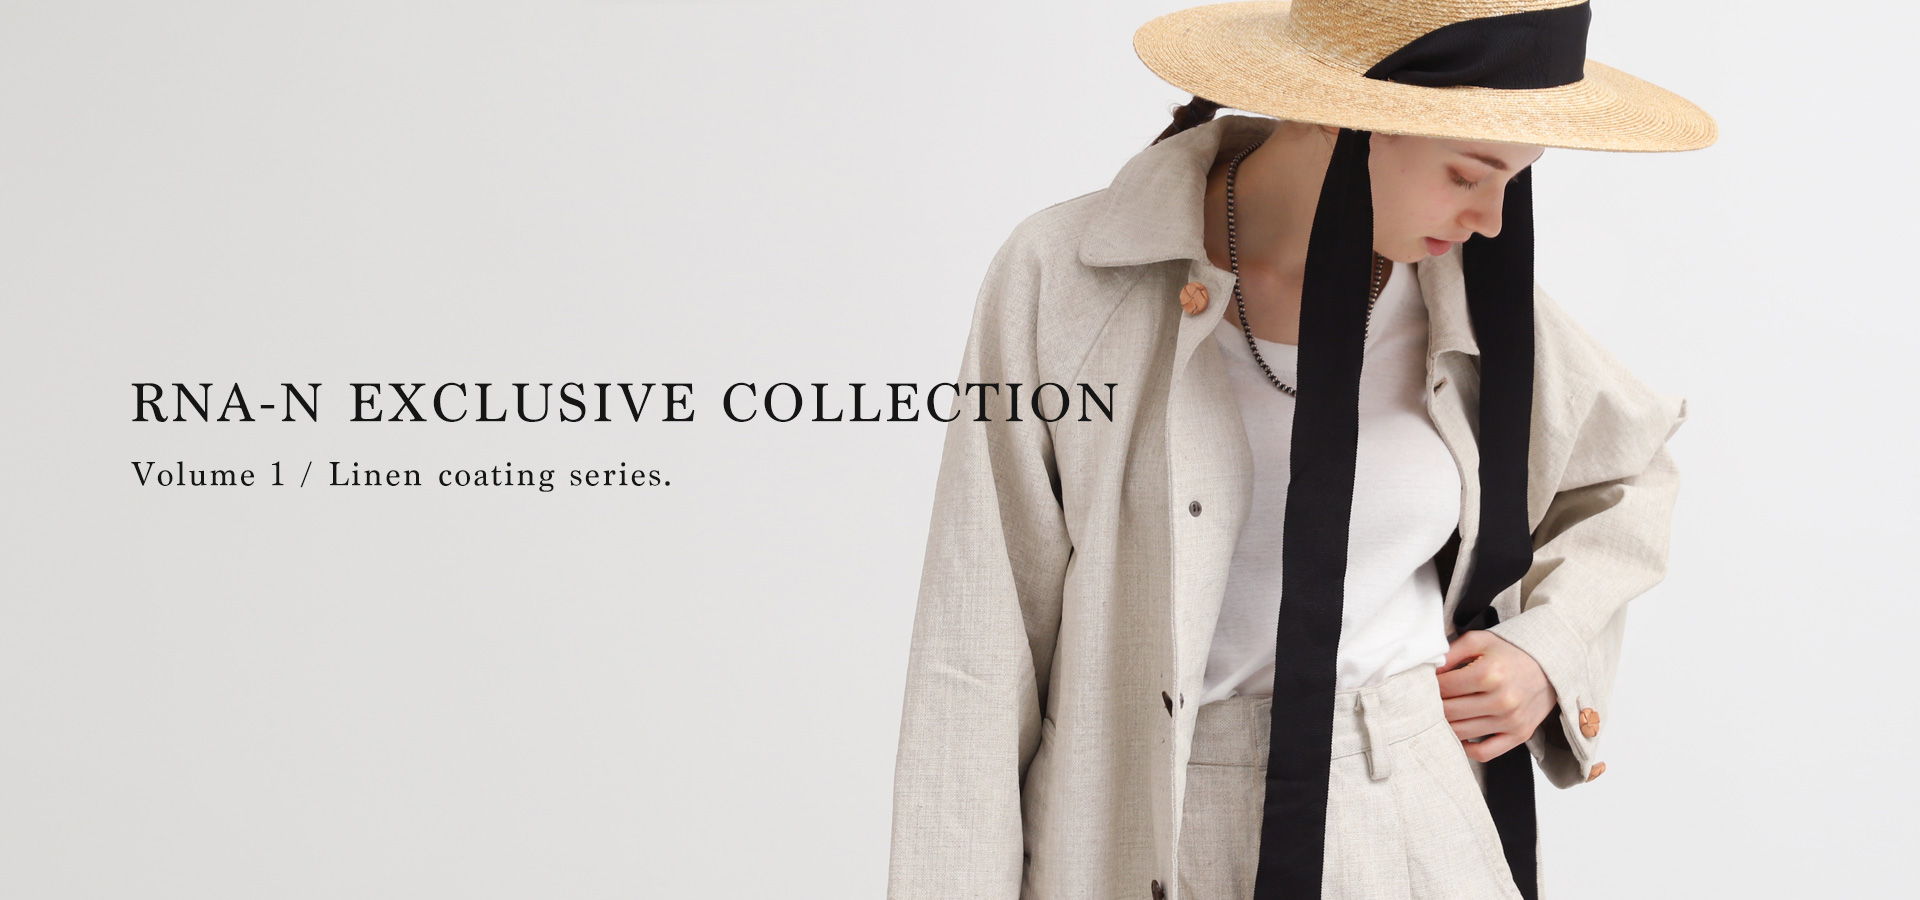 RNA-N EXCLUSIVE COLLECTION